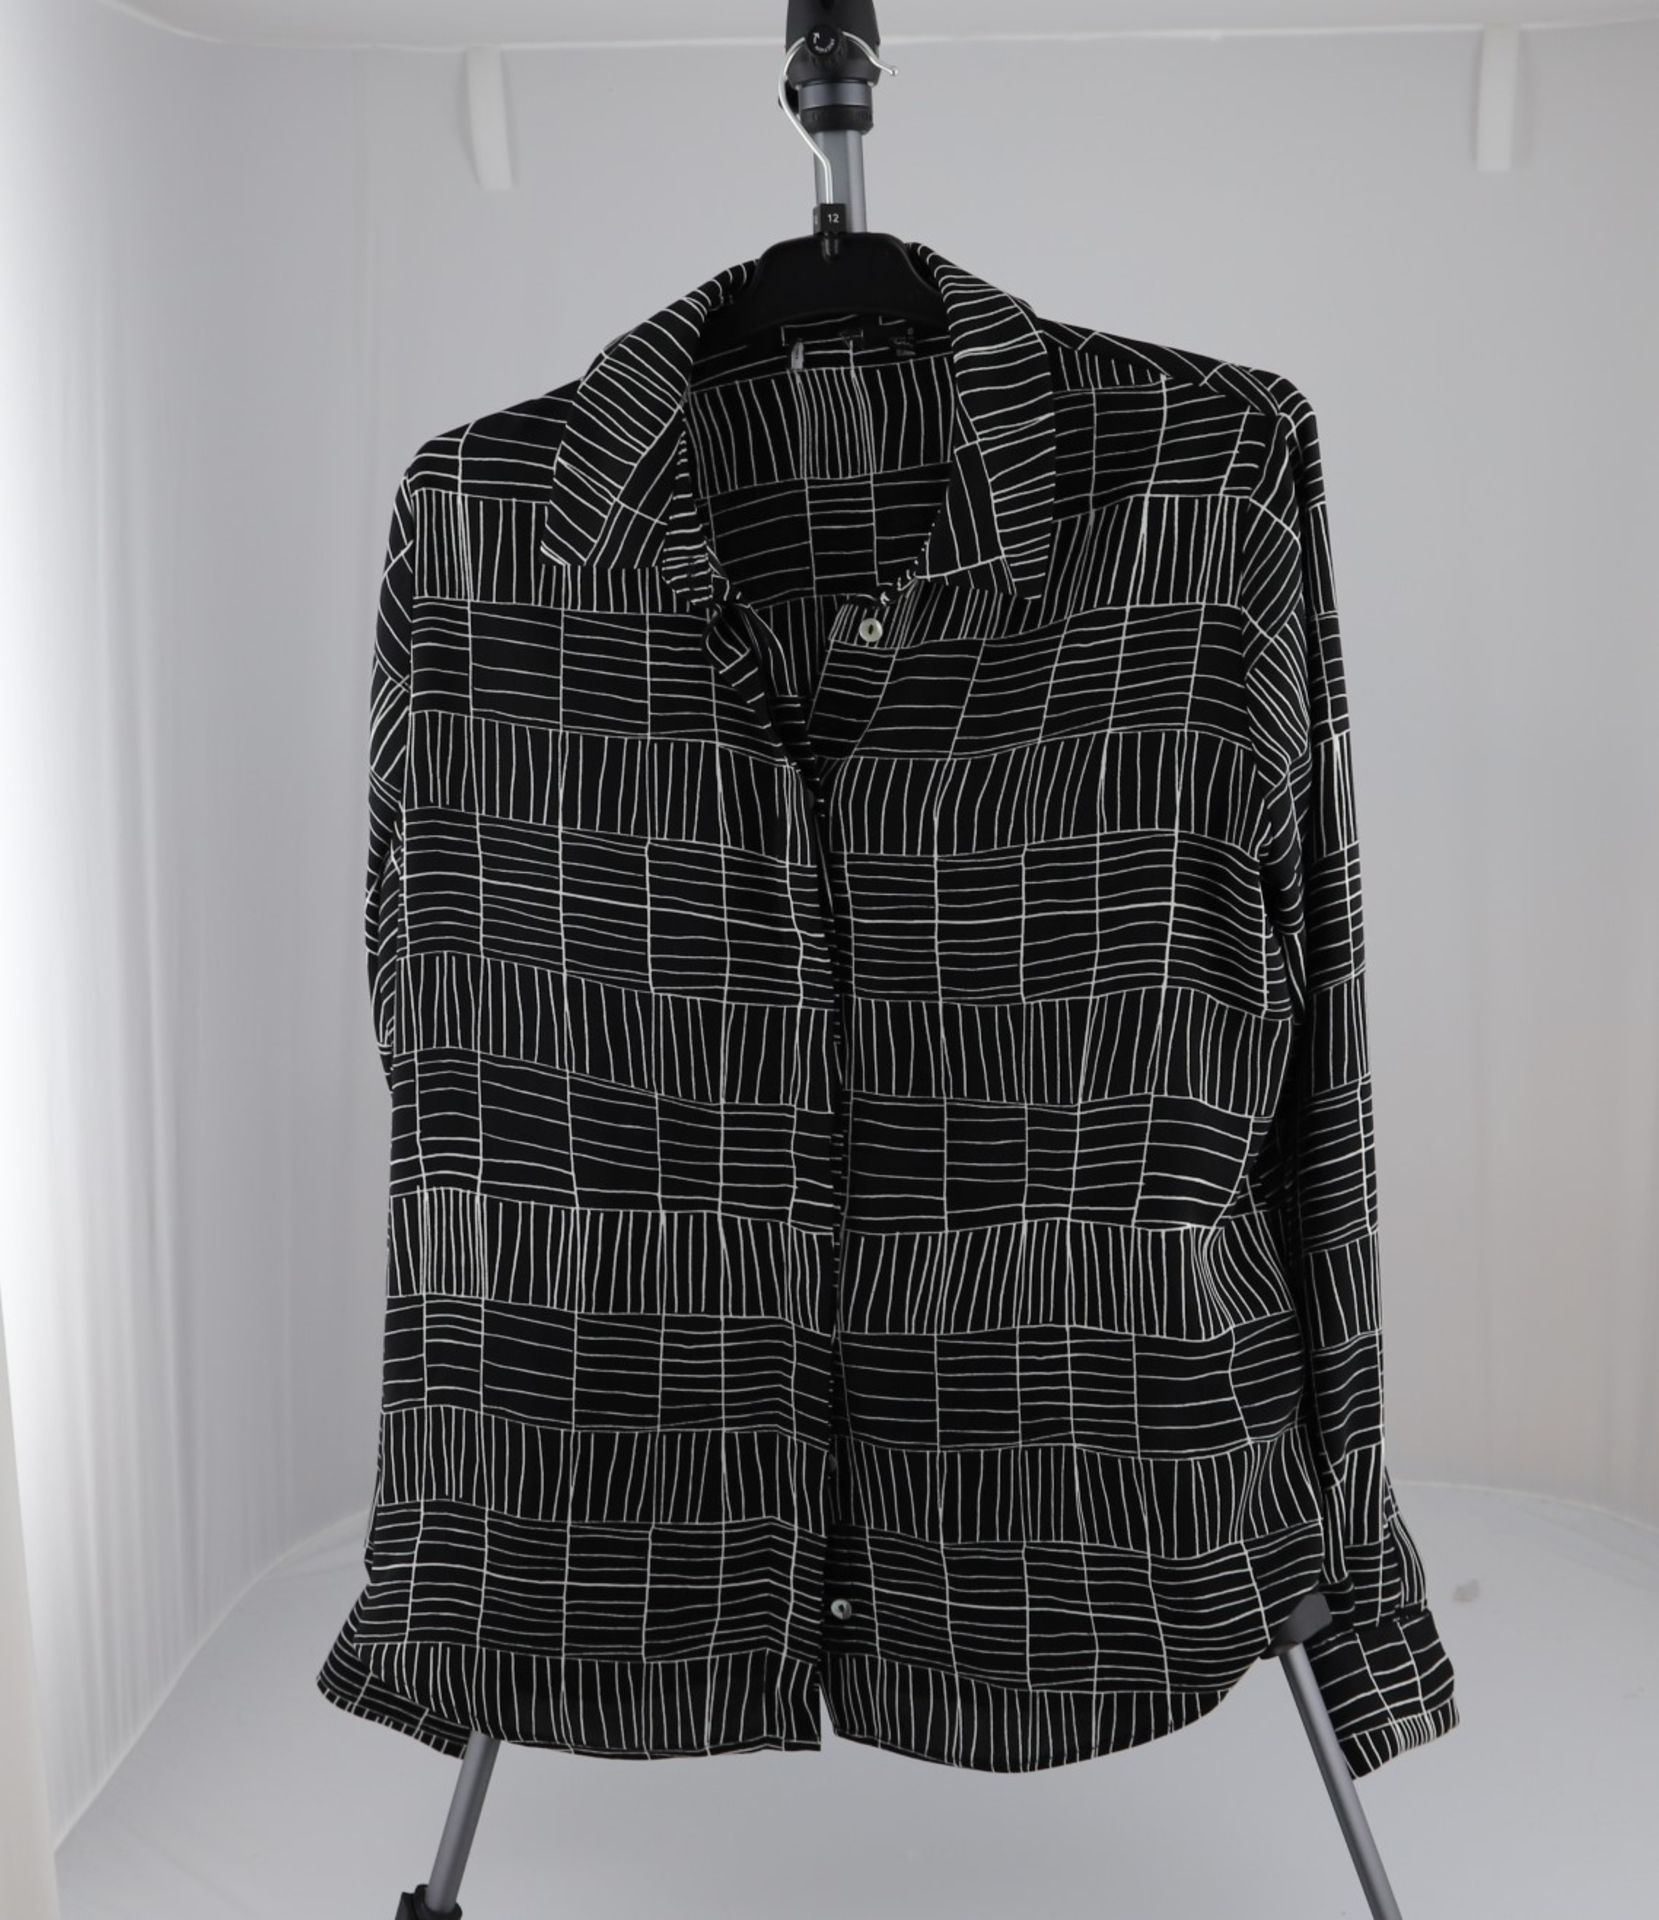 1 x mixed pallet = 274 items of Grade A M&S Womenswear Clothing. Total RRP £7802.50 - Image 6 of 13